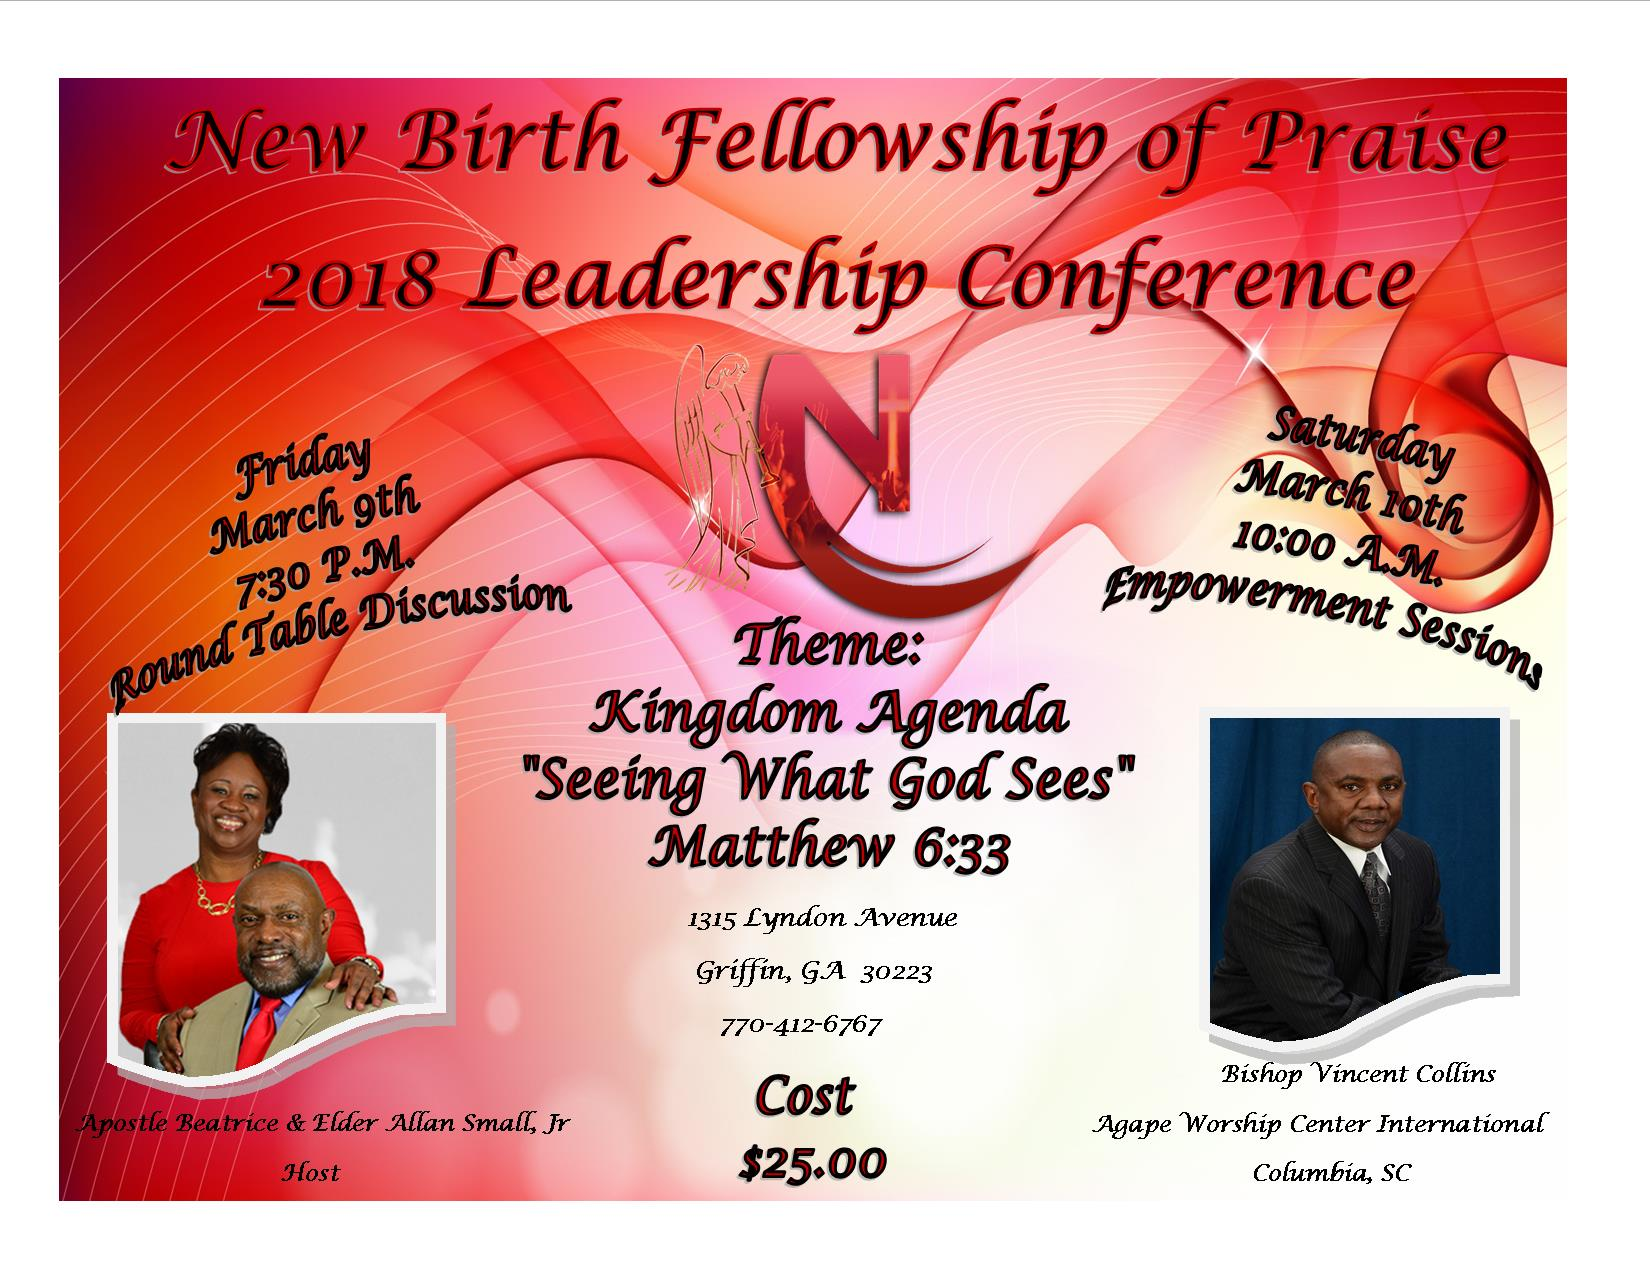 New Birth Fellowship of Praise 2018 Leadership Conference